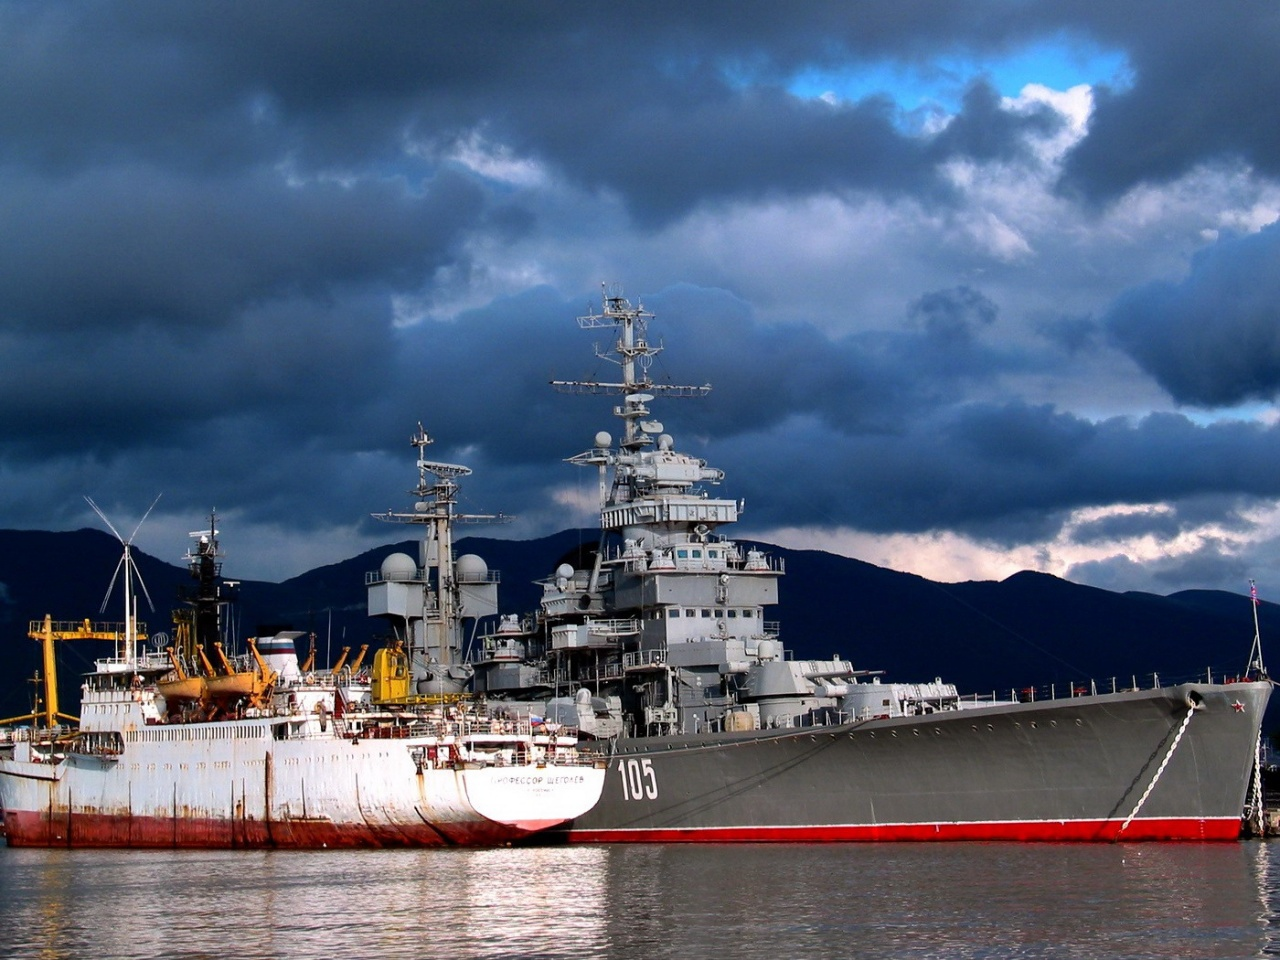 The Soviet military ship at the dock